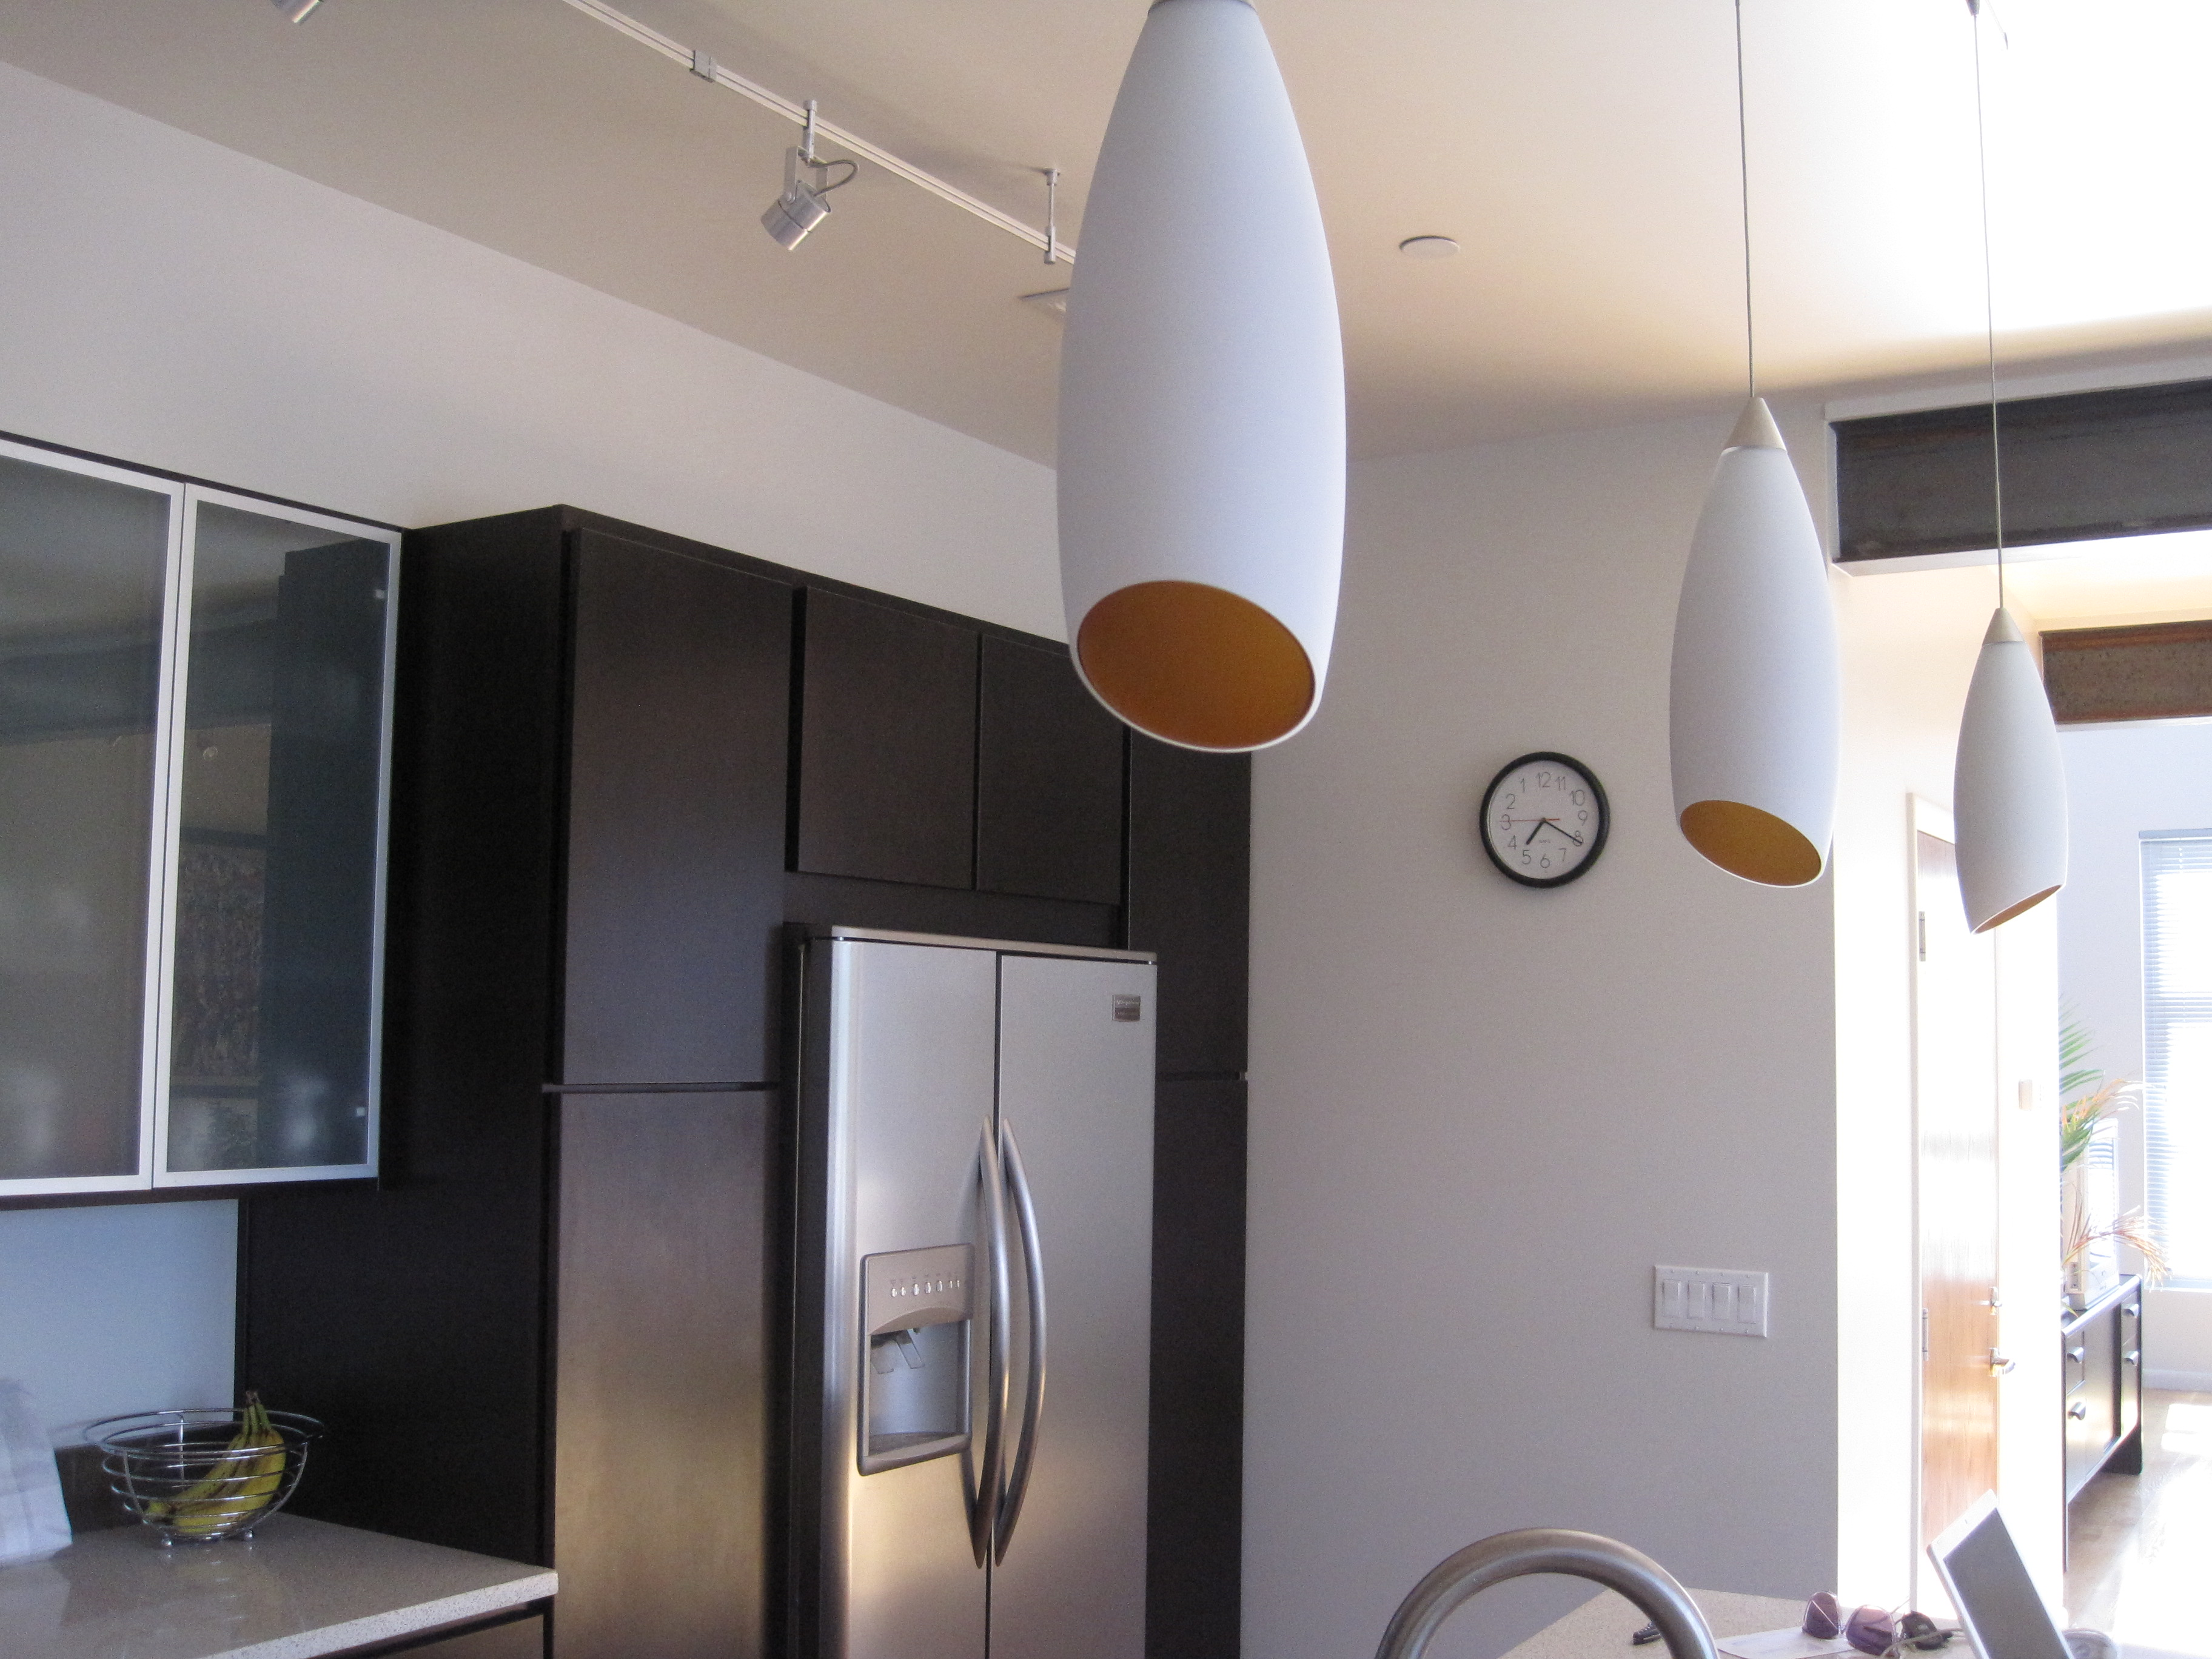 Tech Lighting monorail Camile pendants